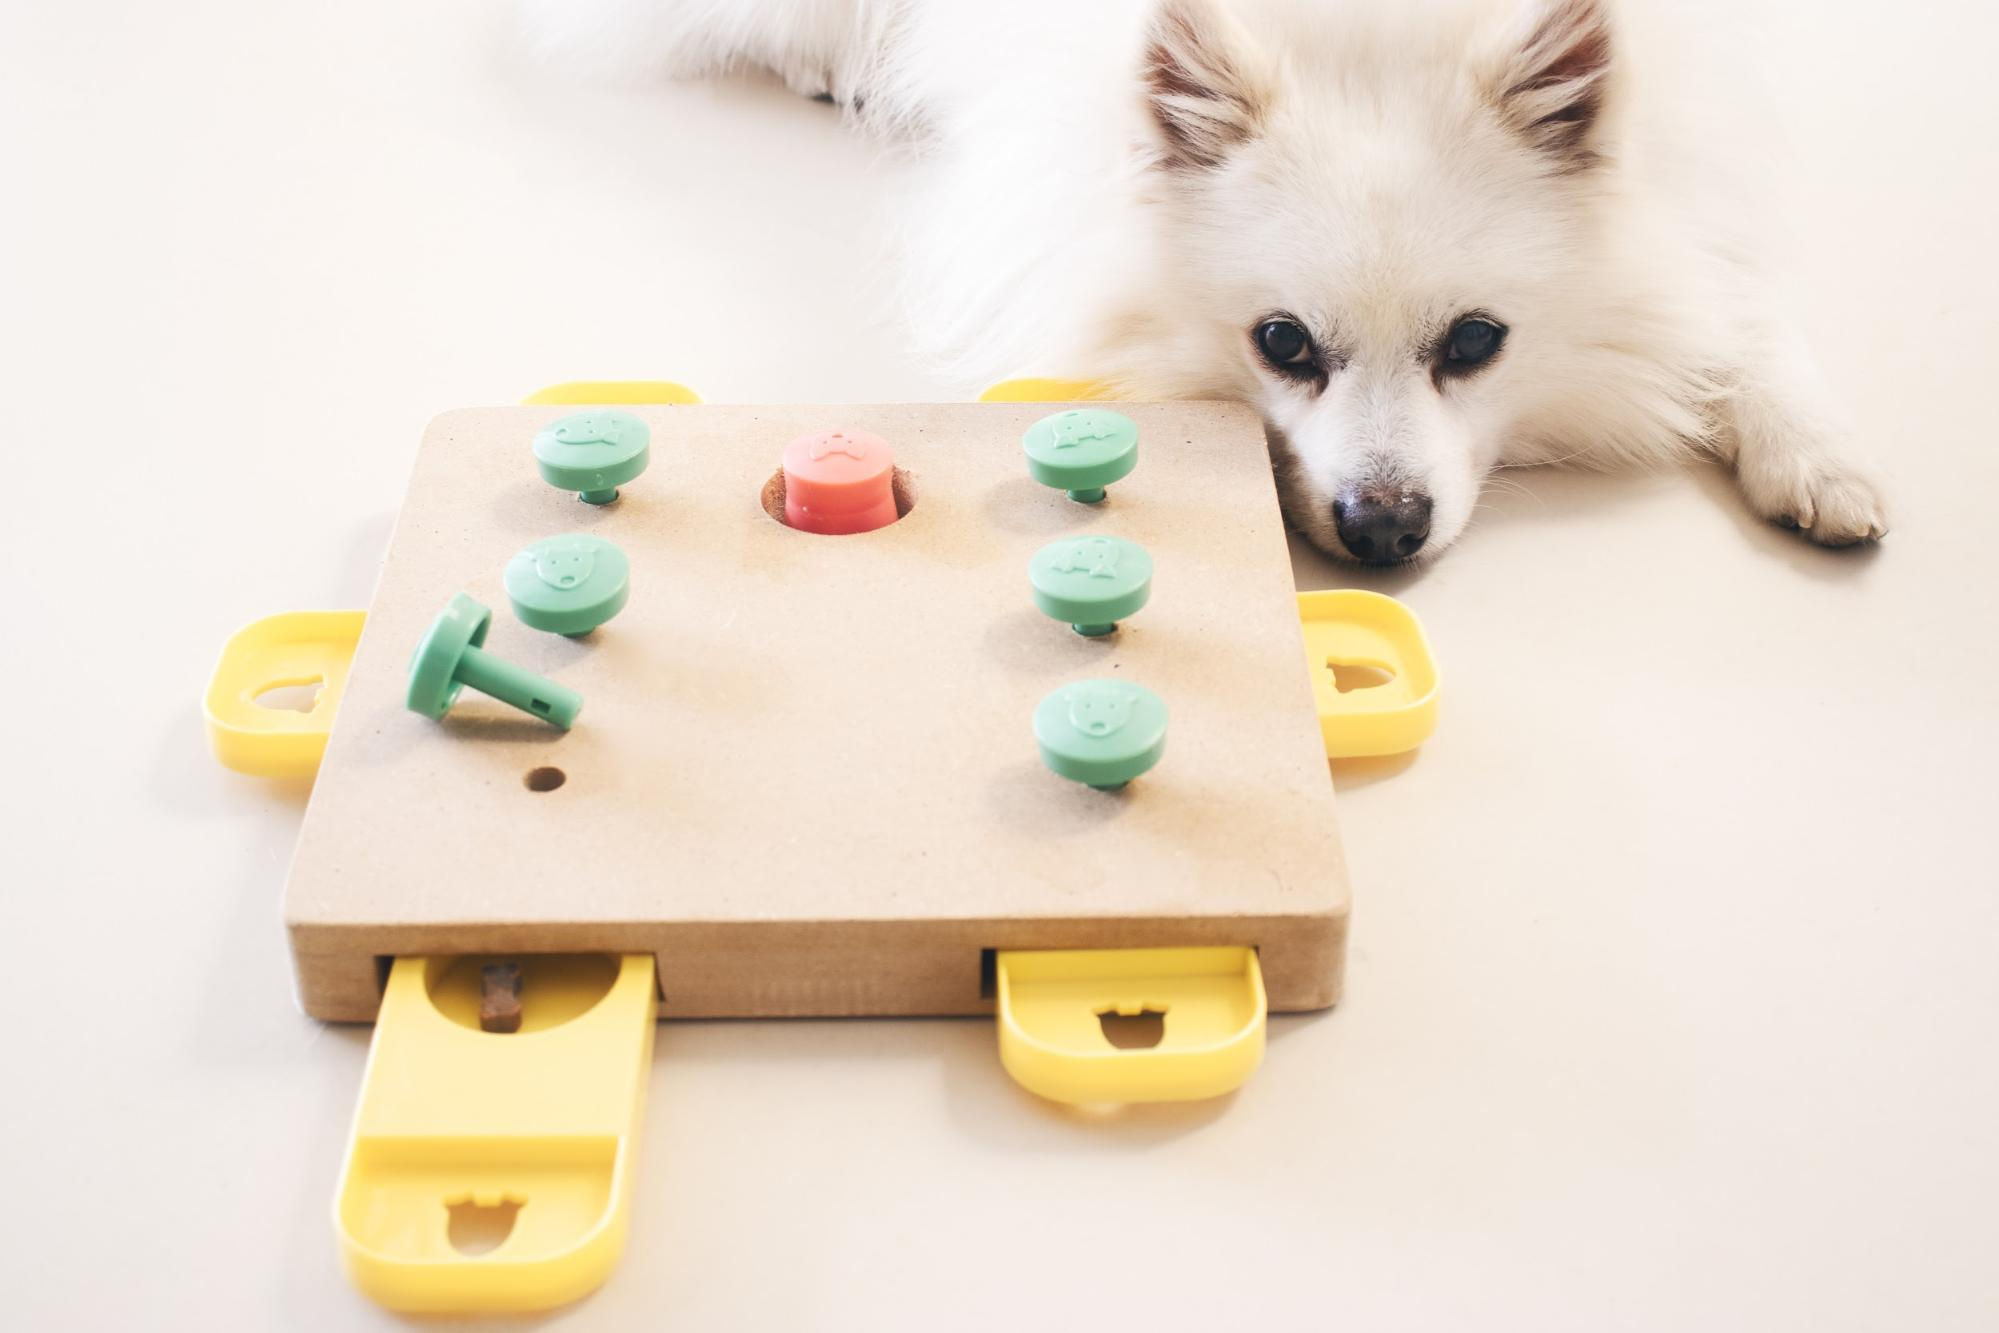 A dog playing with a fillable puzzle toy